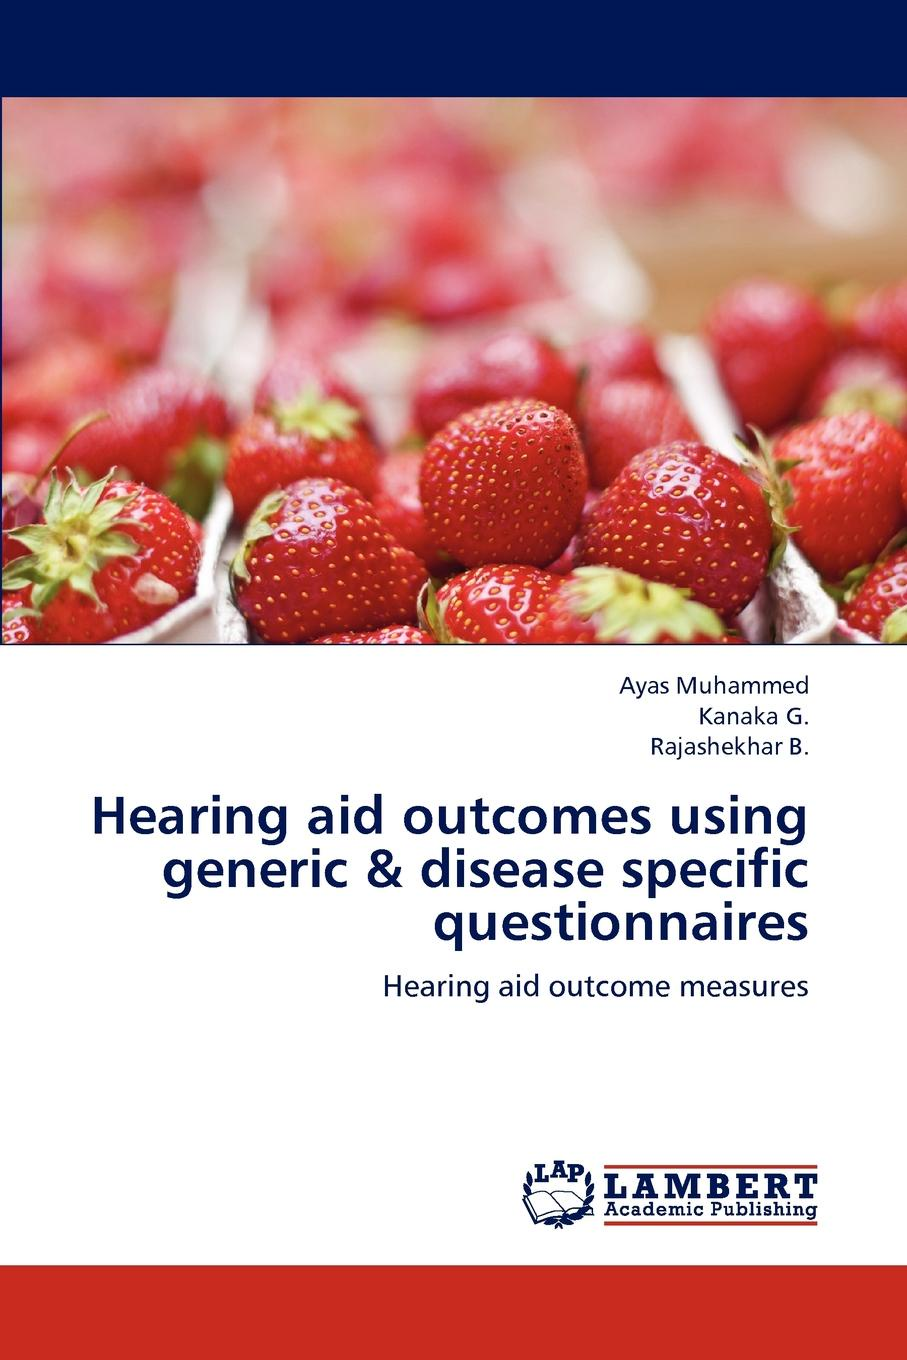 Ayas Muhammed, Kanaka G., Rajashekhar B. Hearing aid outcomes using generic . disease specific questionnaires pocket hearing aid deaf aid sound audiphone voice amplifier digital sound amplifier ear amplifier hearing aids for elderly s 7b